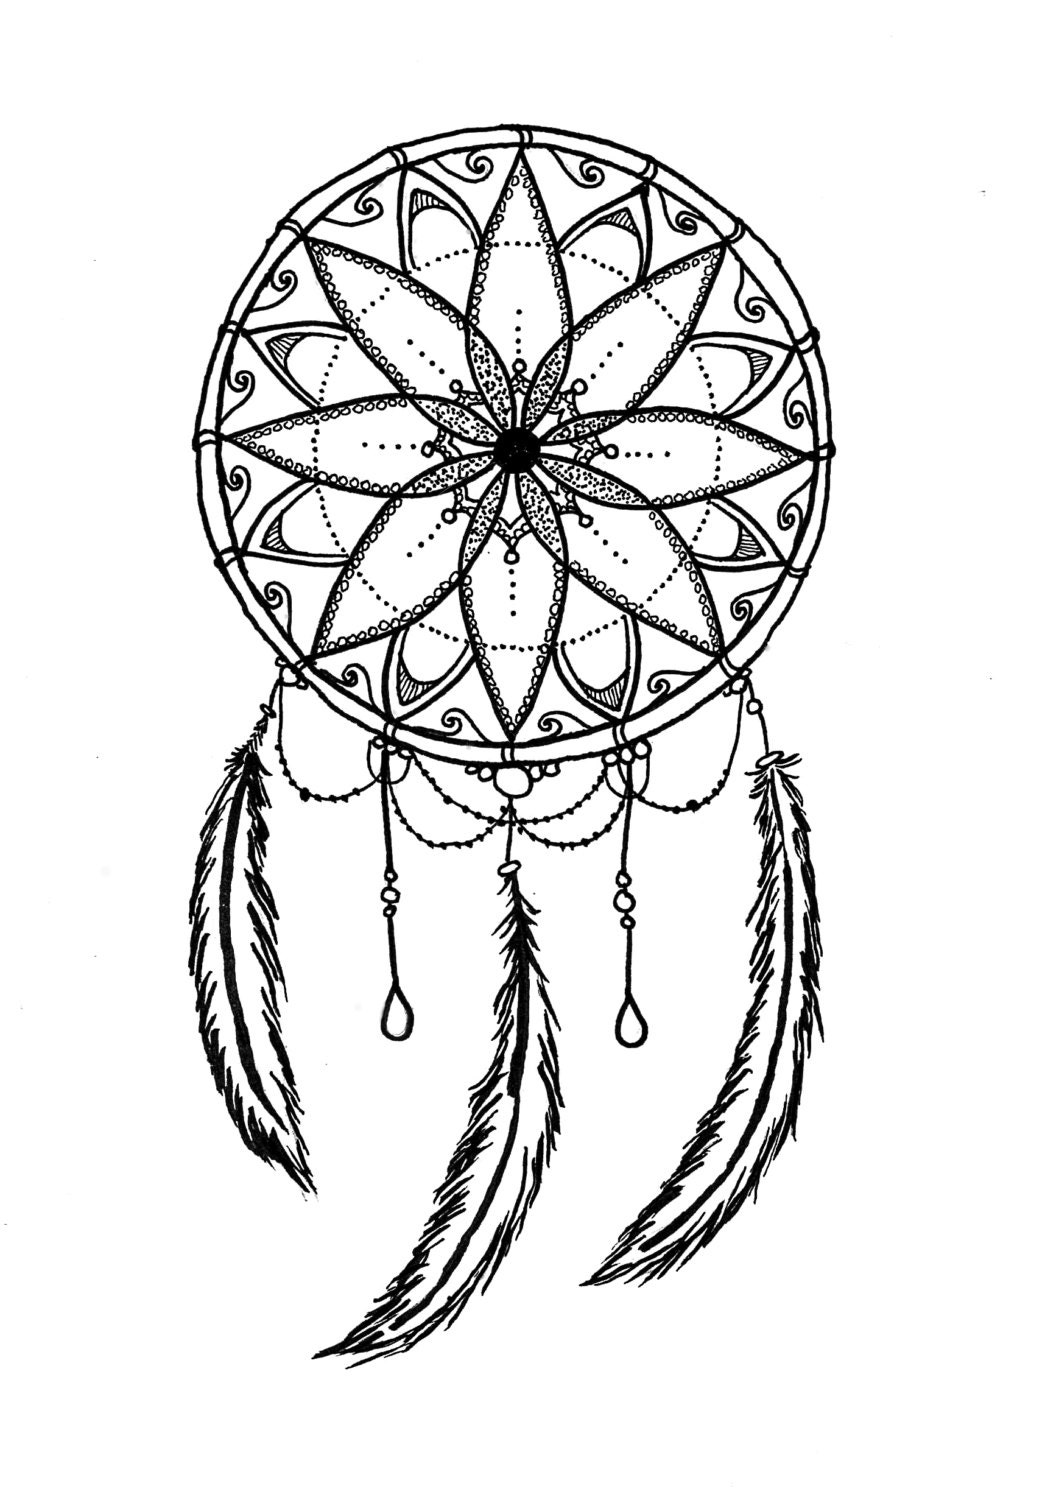 photograph relating to Legend of the Dreamcatcher Printable identify Black and White Dreamcatcher Printable Coloring Website page